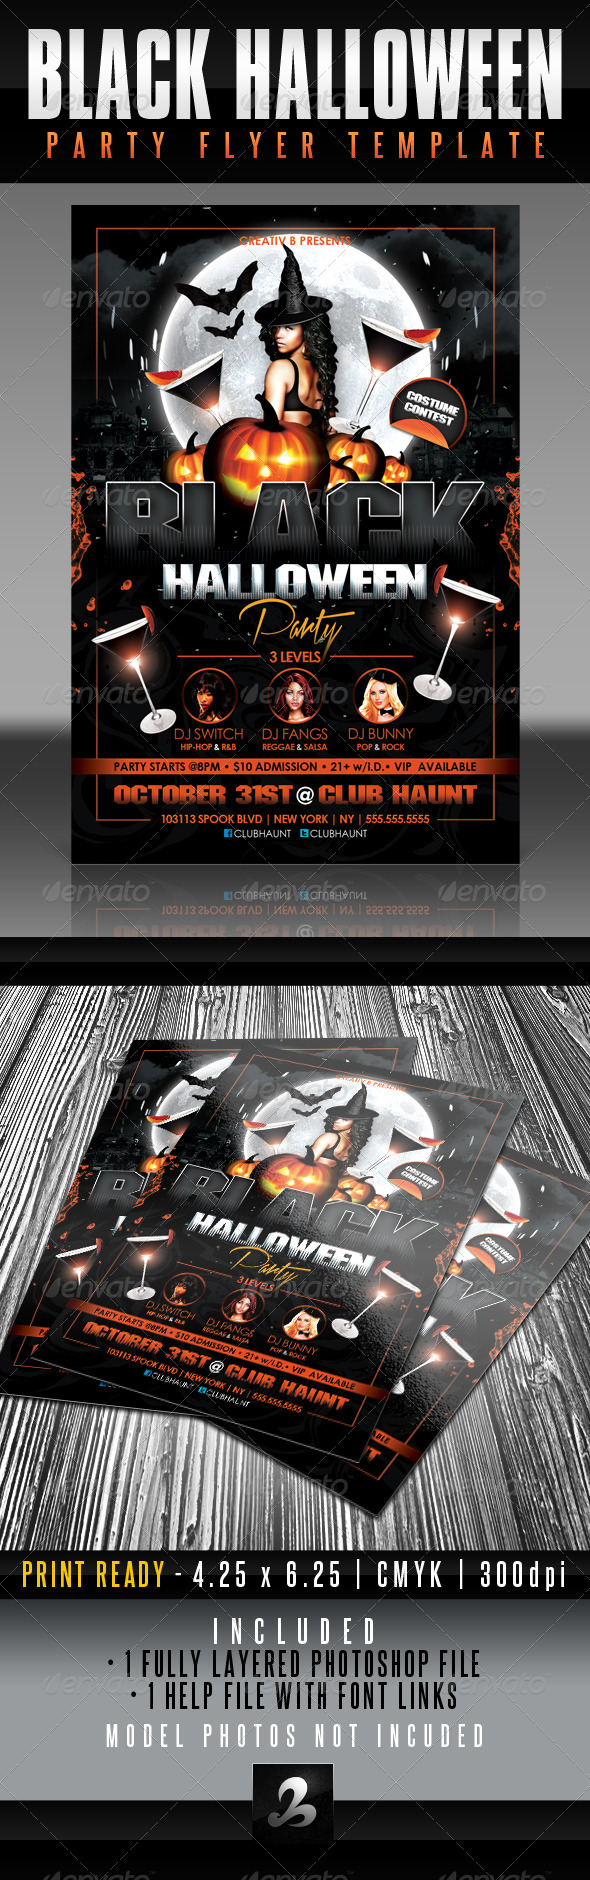 GraphicRiver Black Halloween Party Flyer Template 5598087